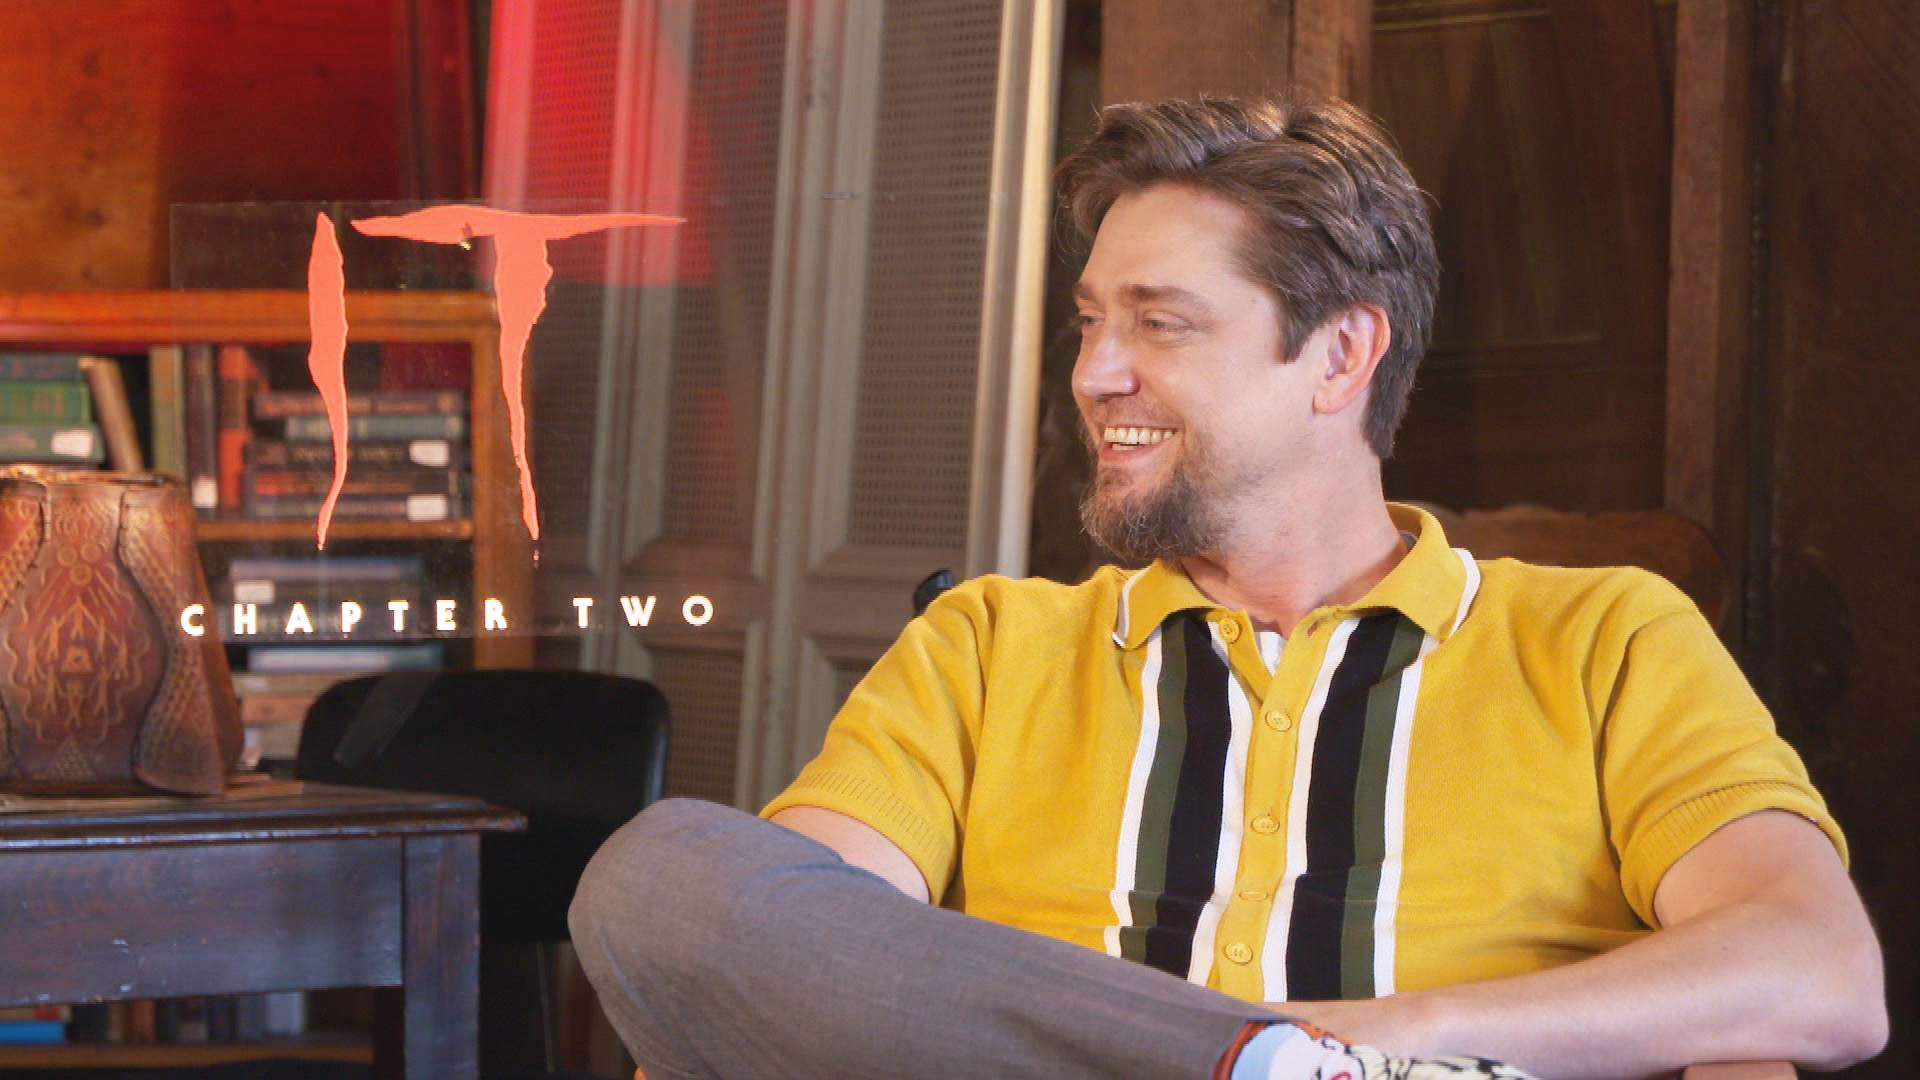 'IT Chapter Two' Director Andy Muschietti Says He's 'Not Done' Filming (Exclusive)